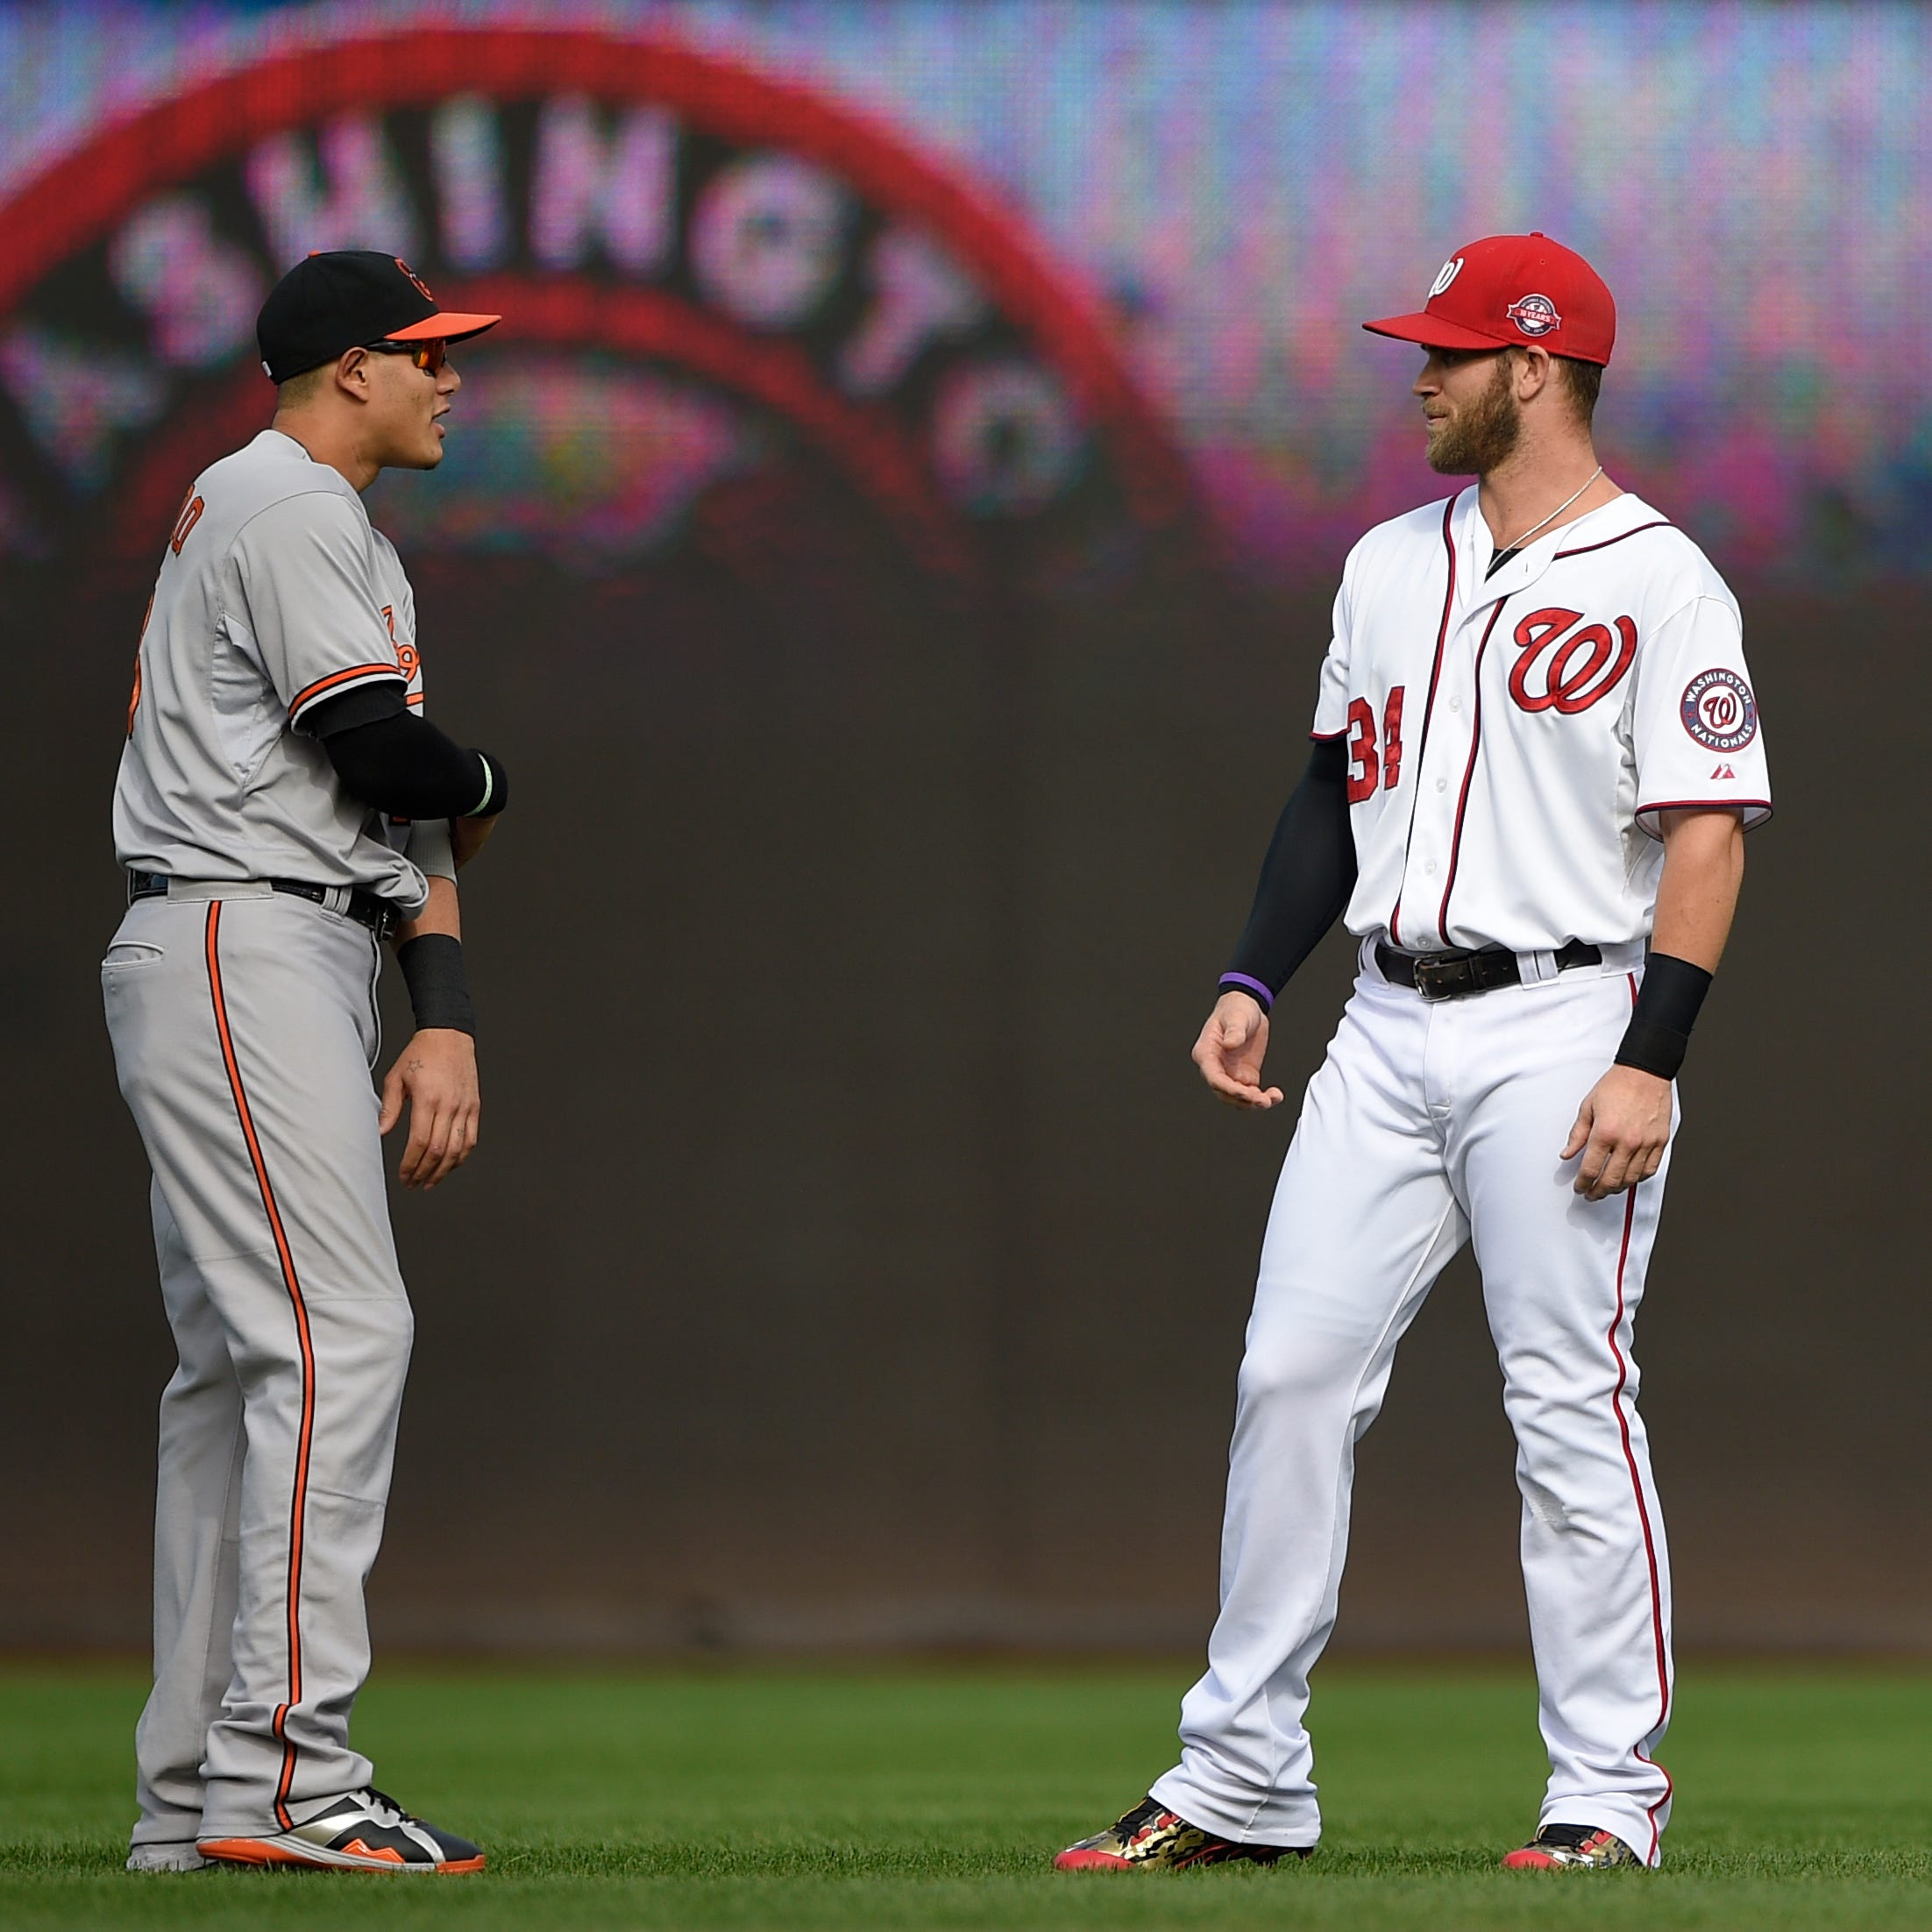 Paul Daugherty: Manny Machado and Bryce Harper remain unemployed, but does it matter?